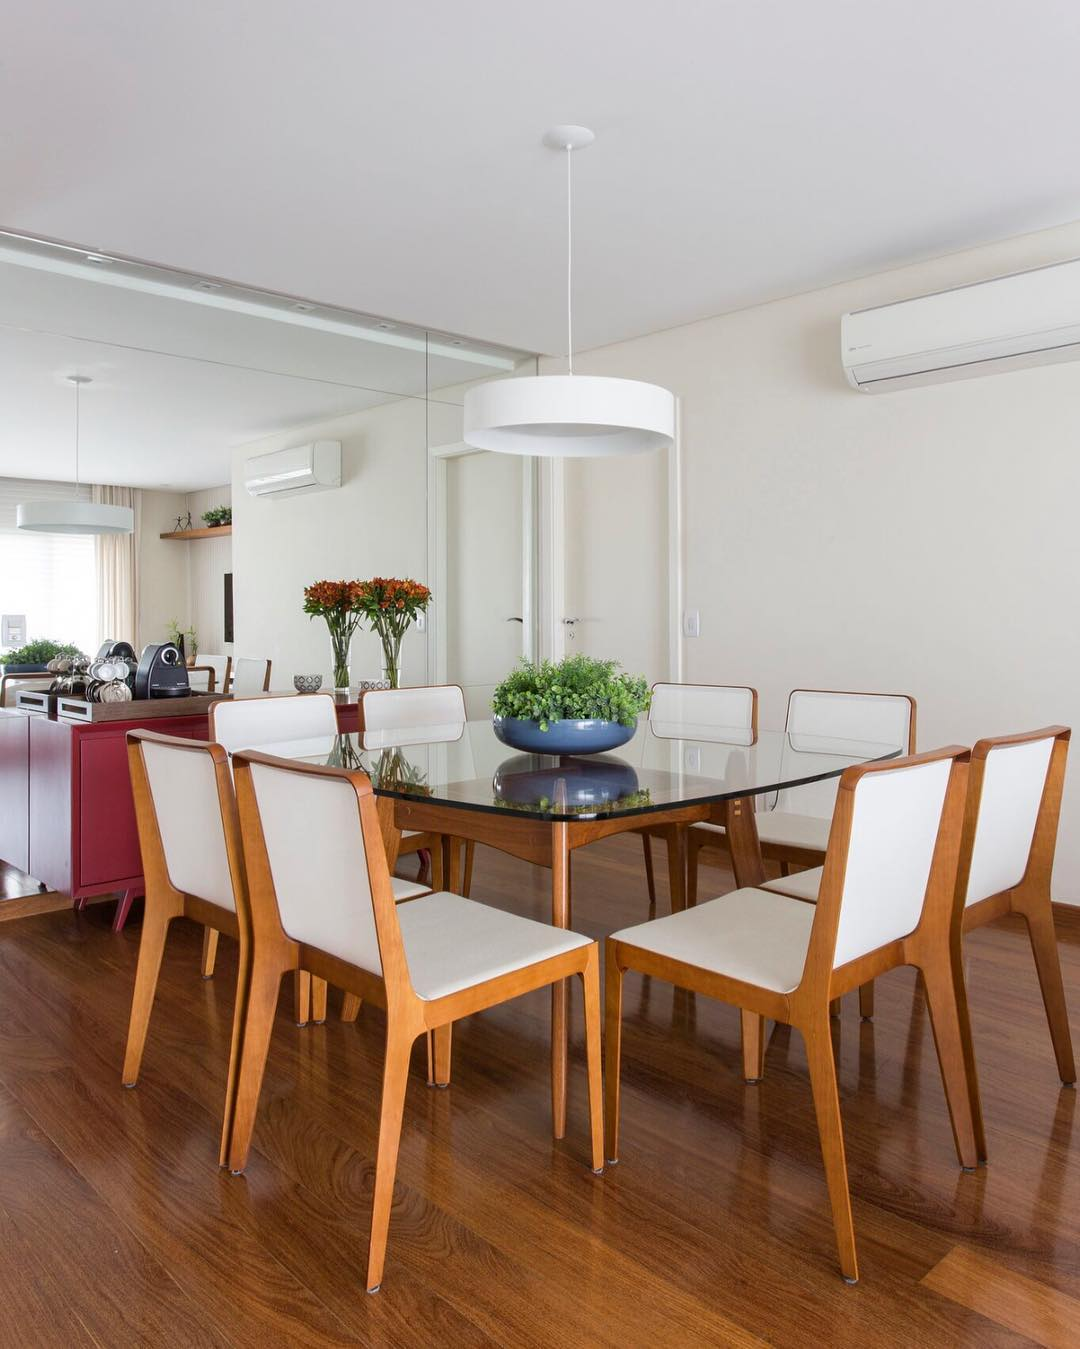 Glass and wood table with wooden chairs